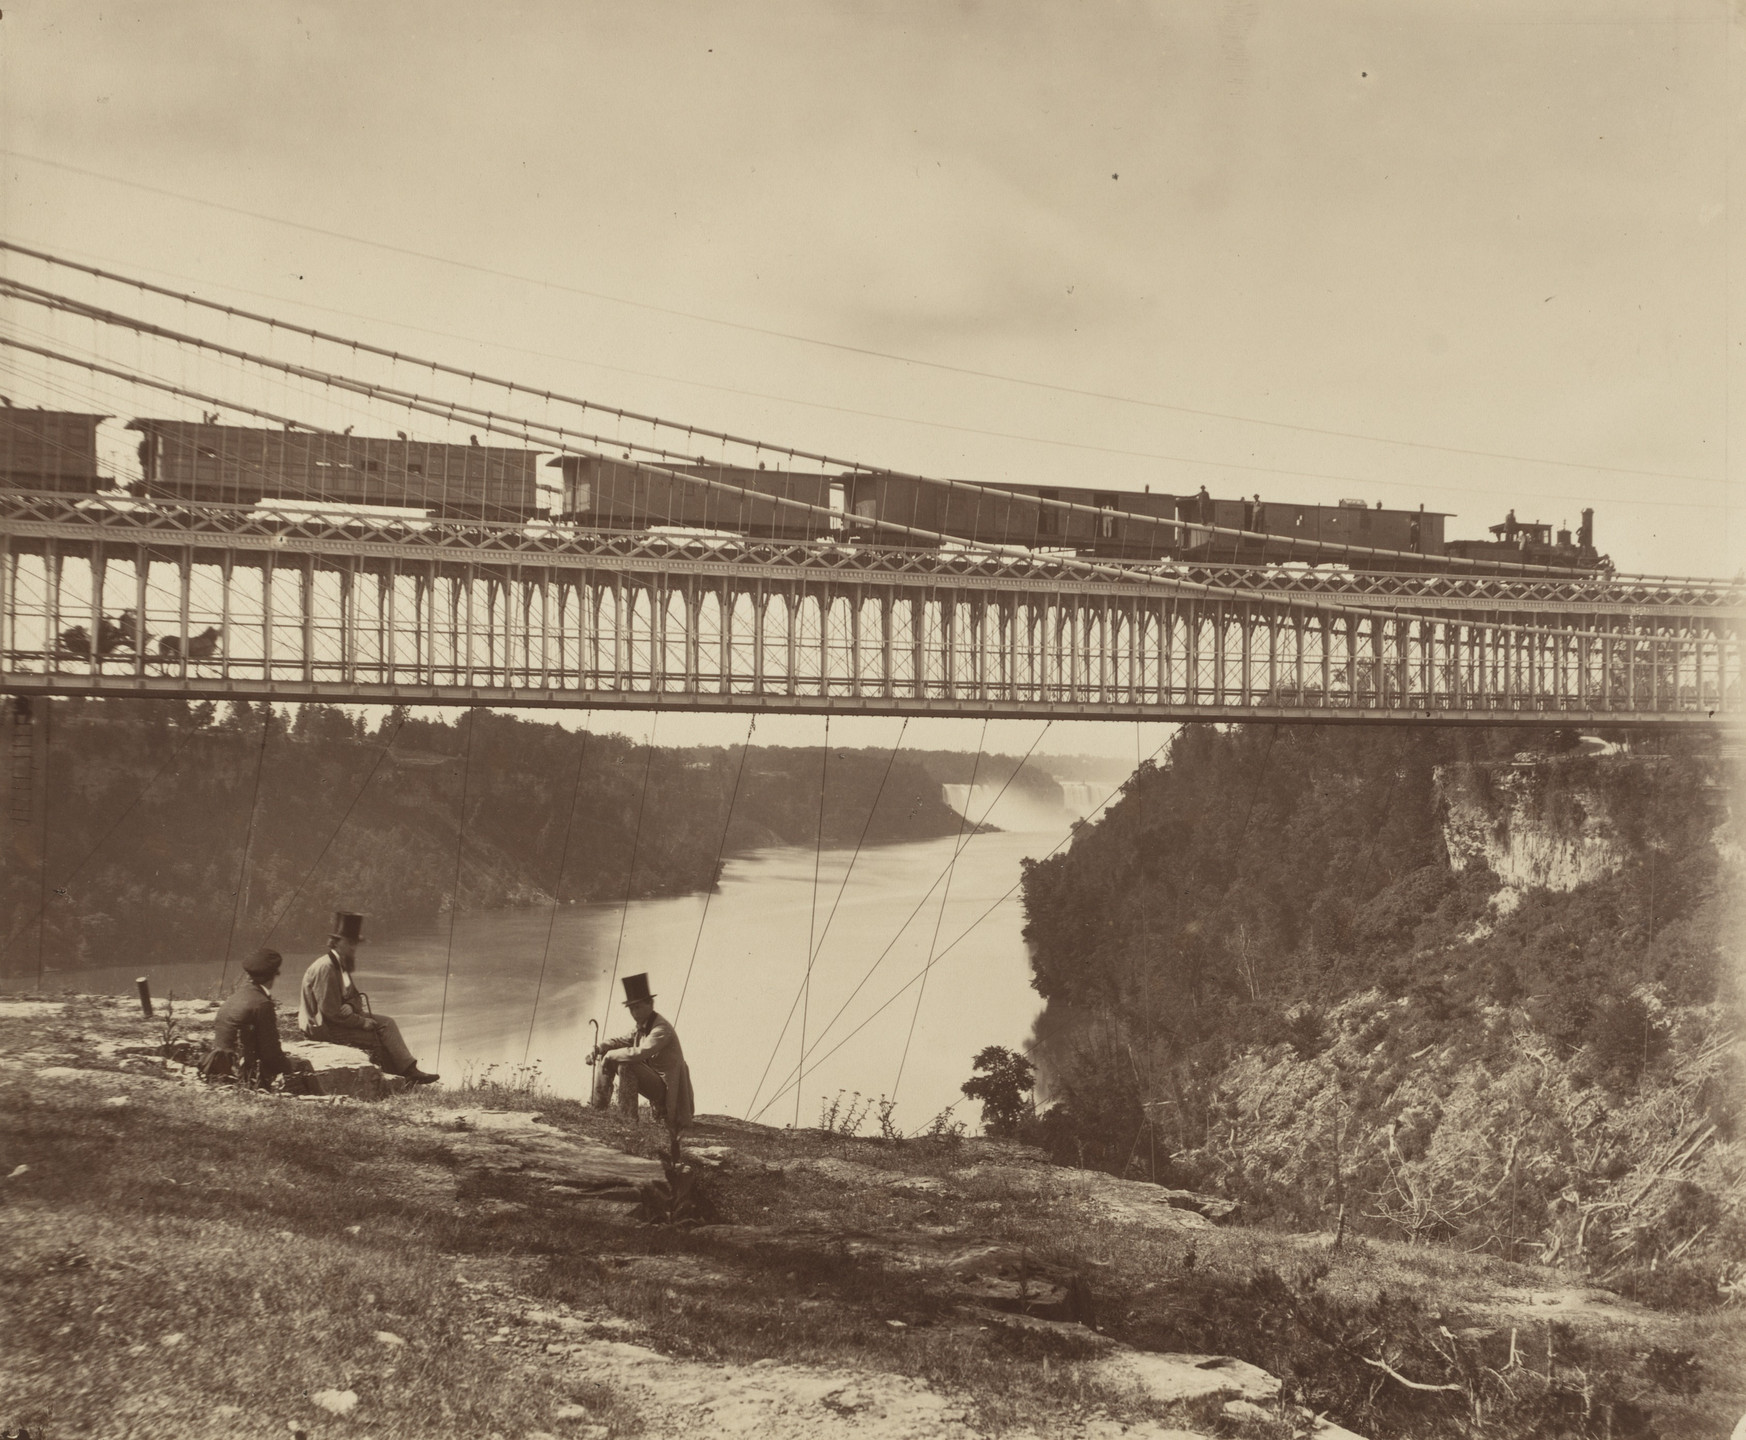 William England. Niagara Suspension Bridge. 1859